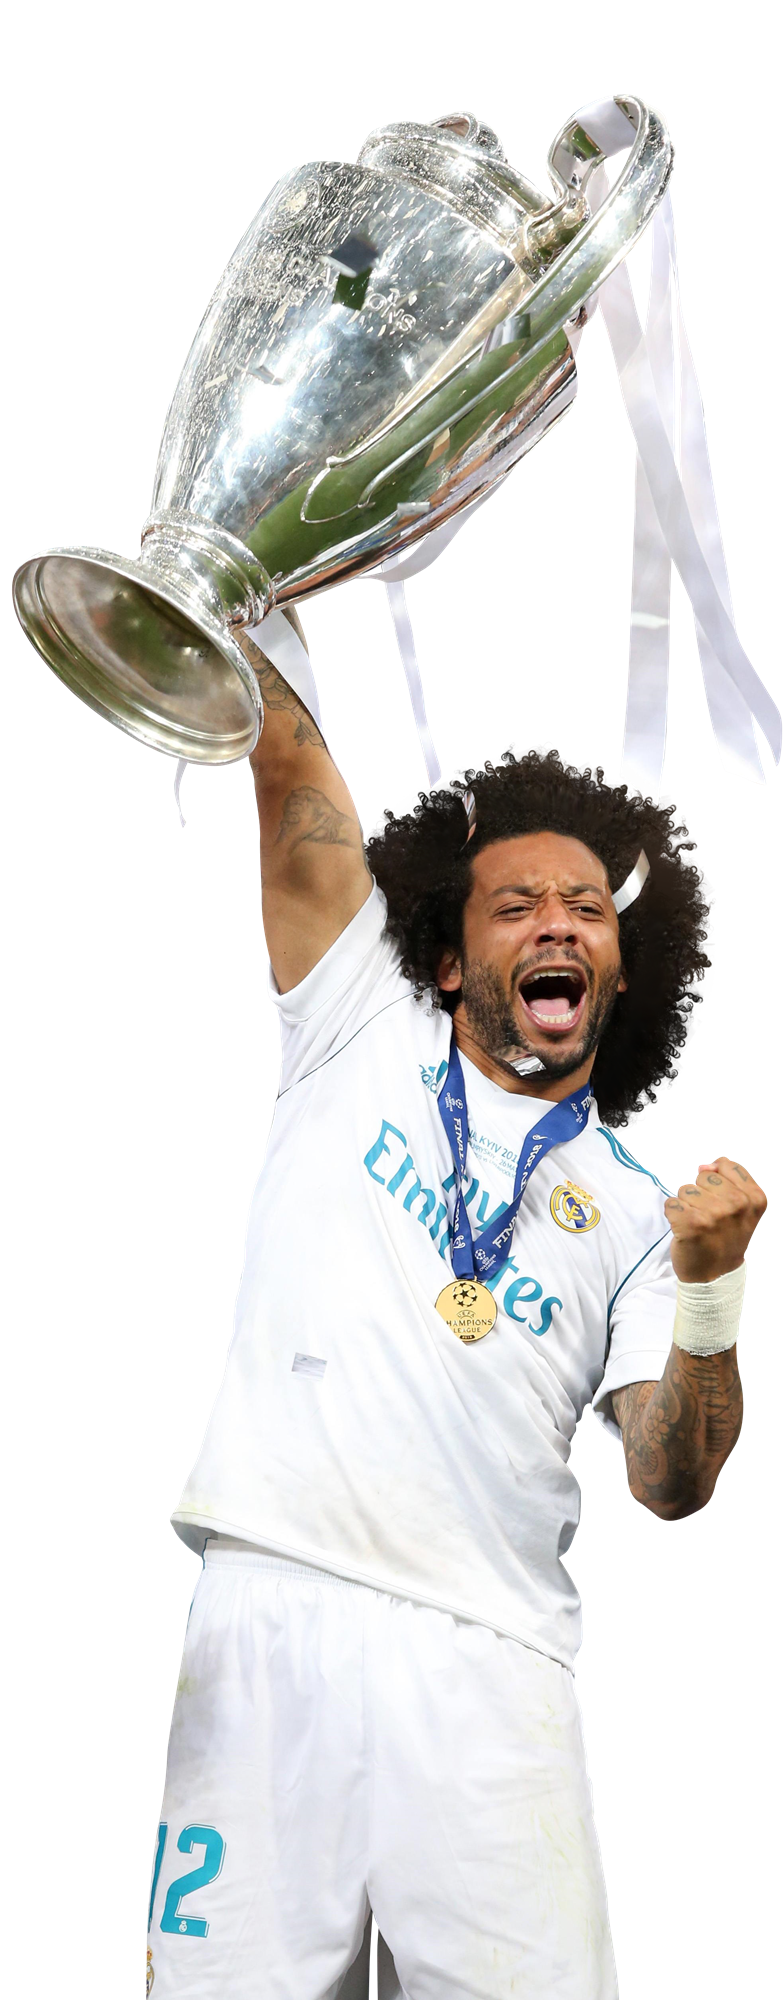 Marcelo Render Real Madrid View And Download Football Renders In Png Now For Free By Szwejzi May 28 2018 Real Madrid Madrid Football